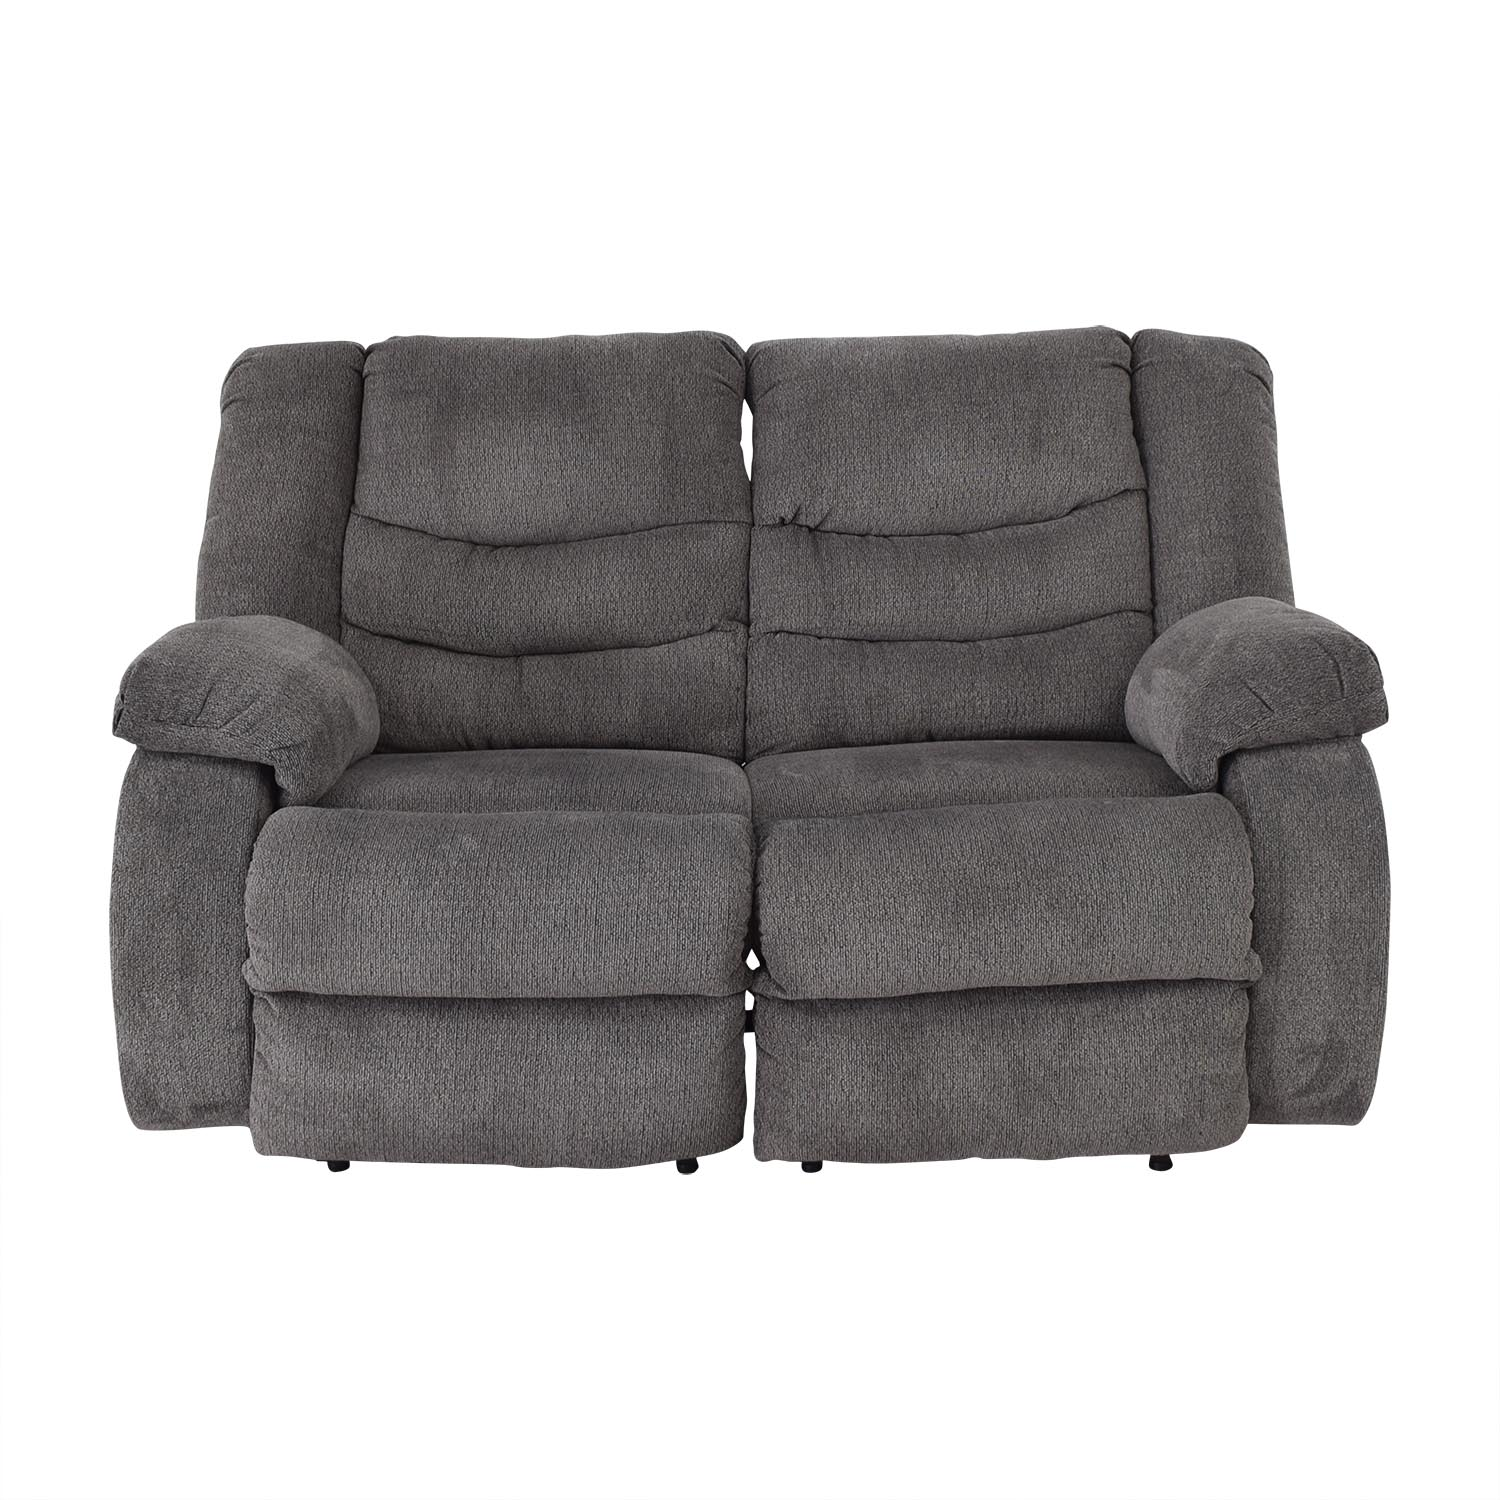 Ashley Furniture Ashley Furniture Gray Reclining Loveseat Recliners